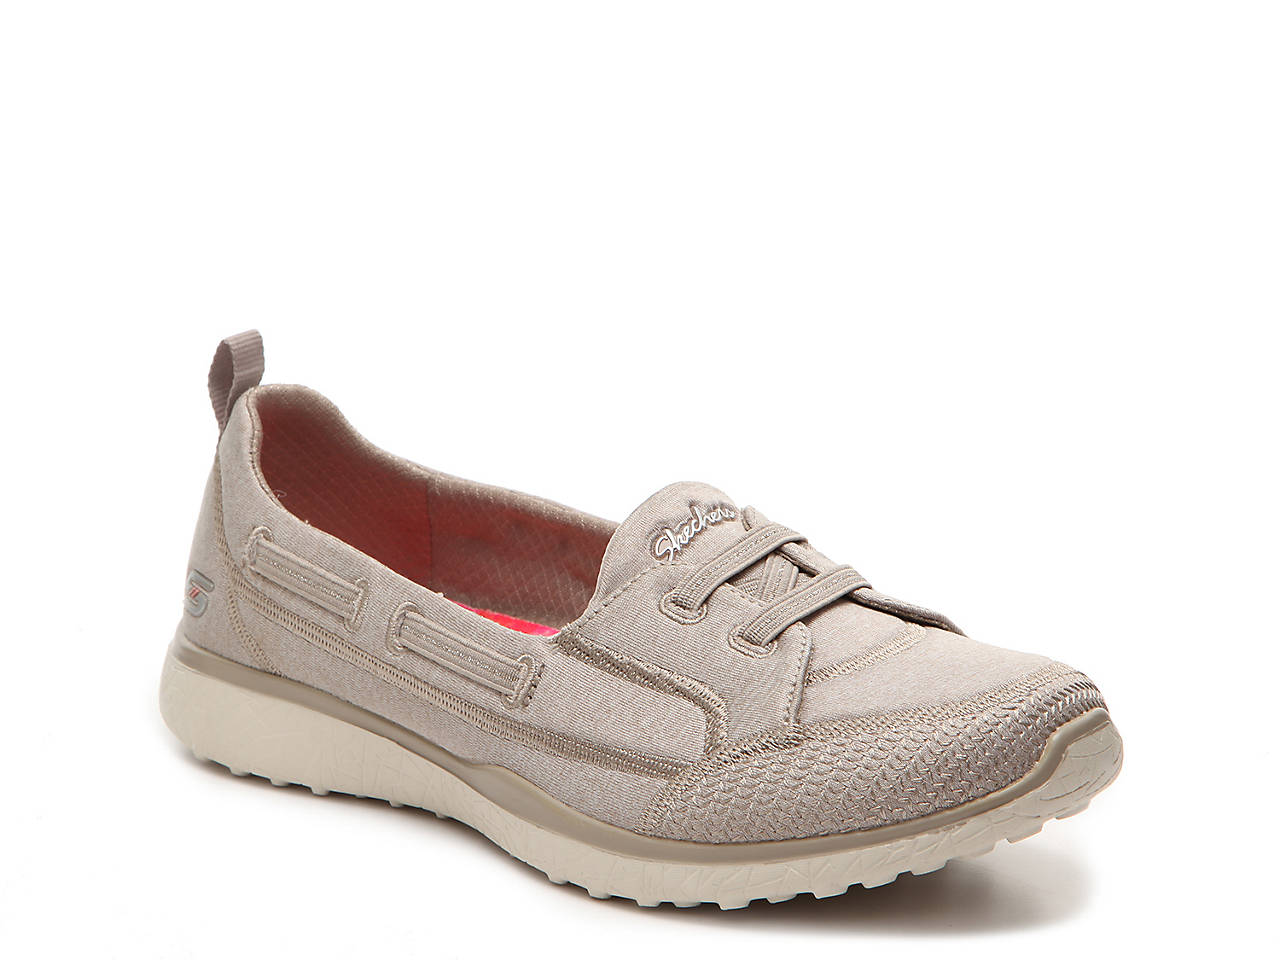 4dfab1118dd0 Skechers Top Notch Boat Shoe Women s Shoes